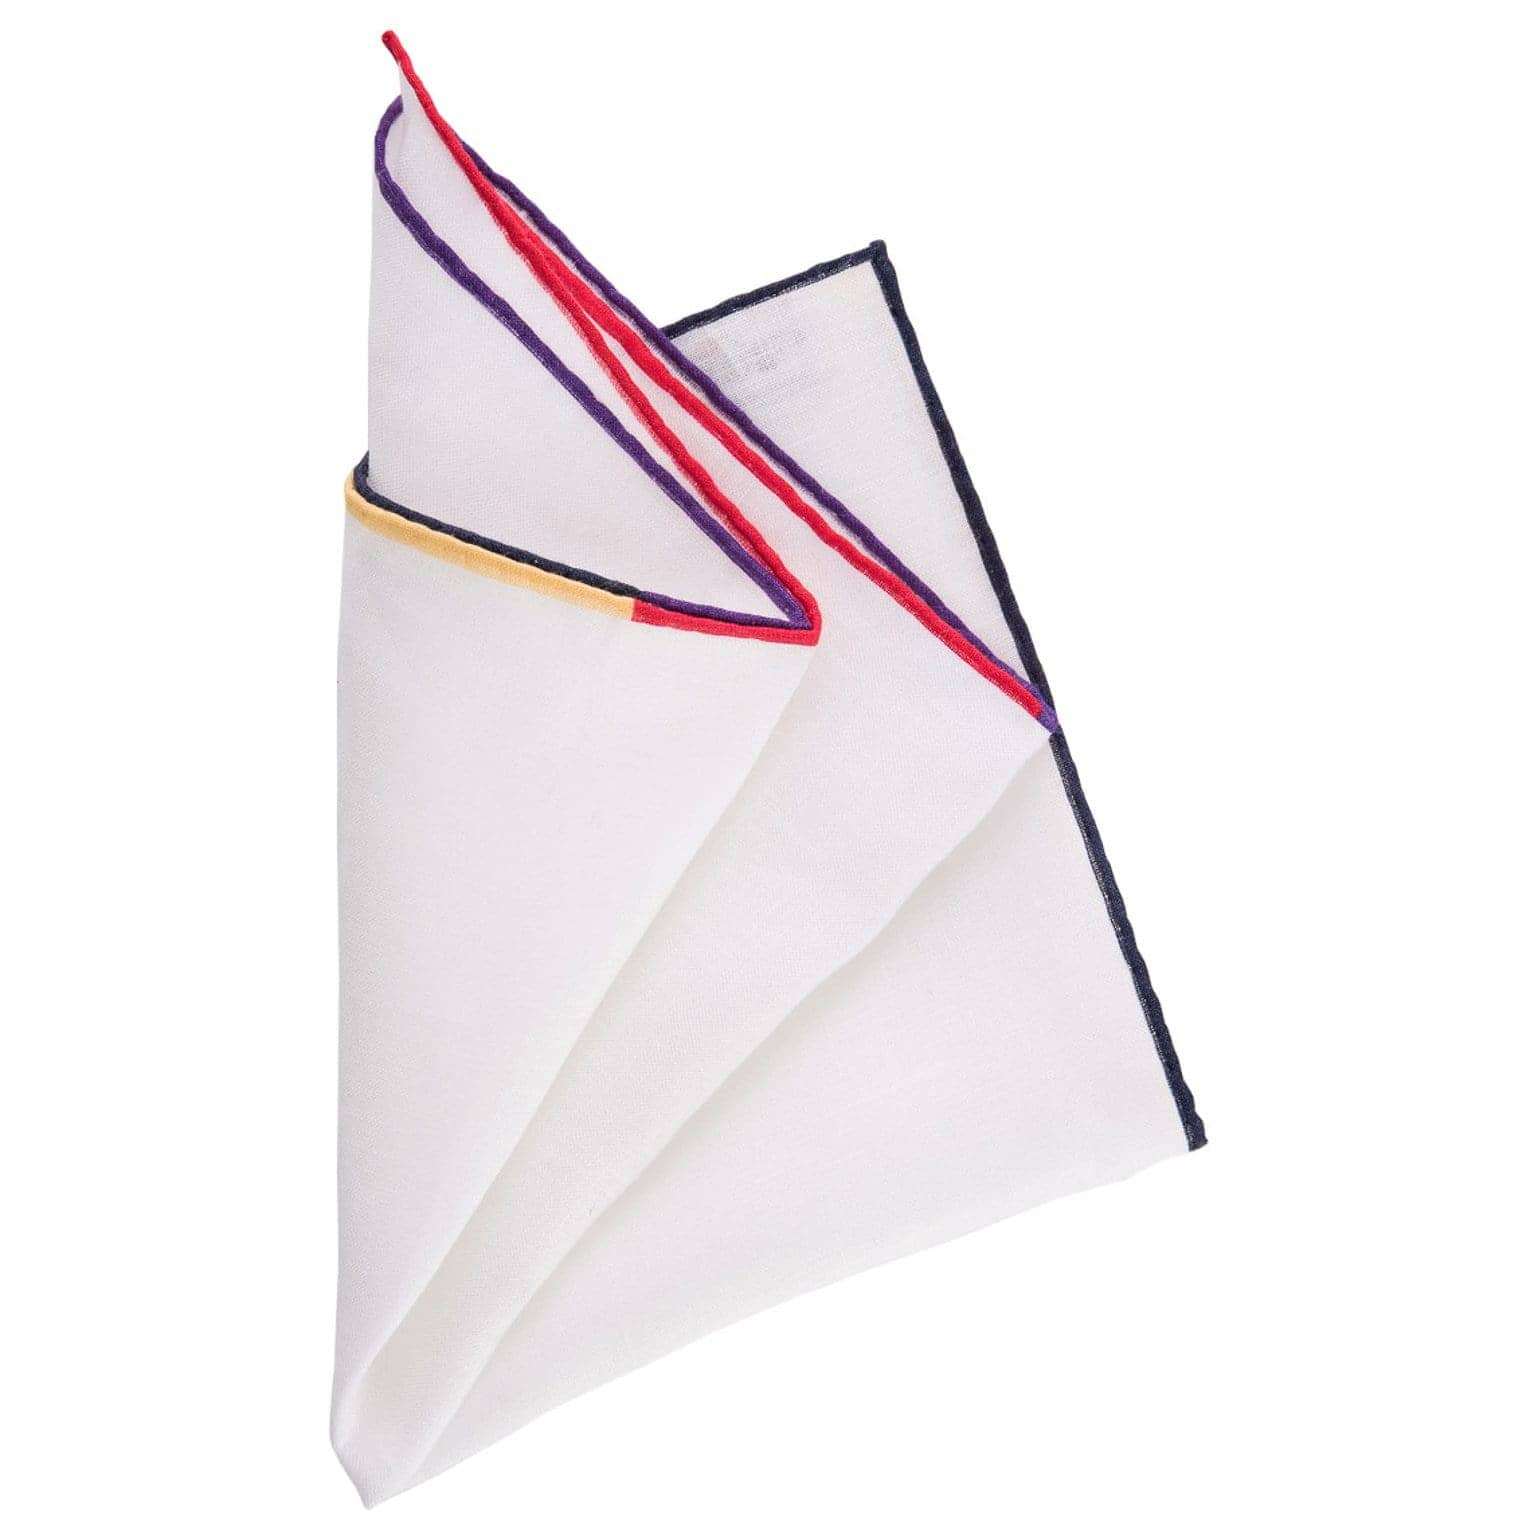 White Linen Pocket Square - 4 colors Hand Rolled Hem